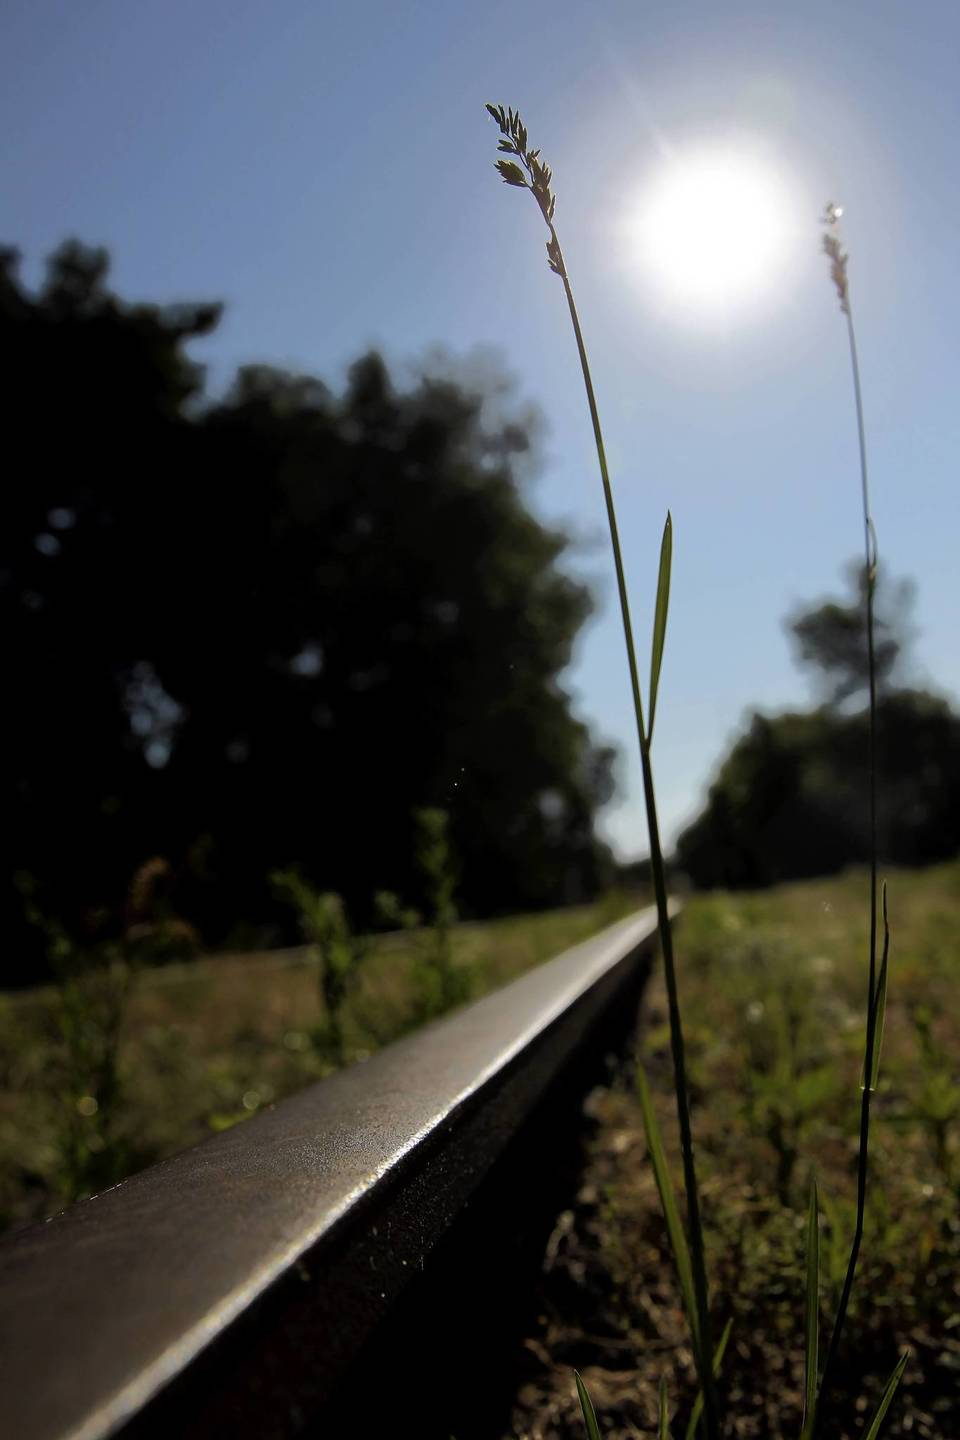 Grass and weeds populate the elevated Bloomingdale Trail near Chicago's Bucktown neighborhood.